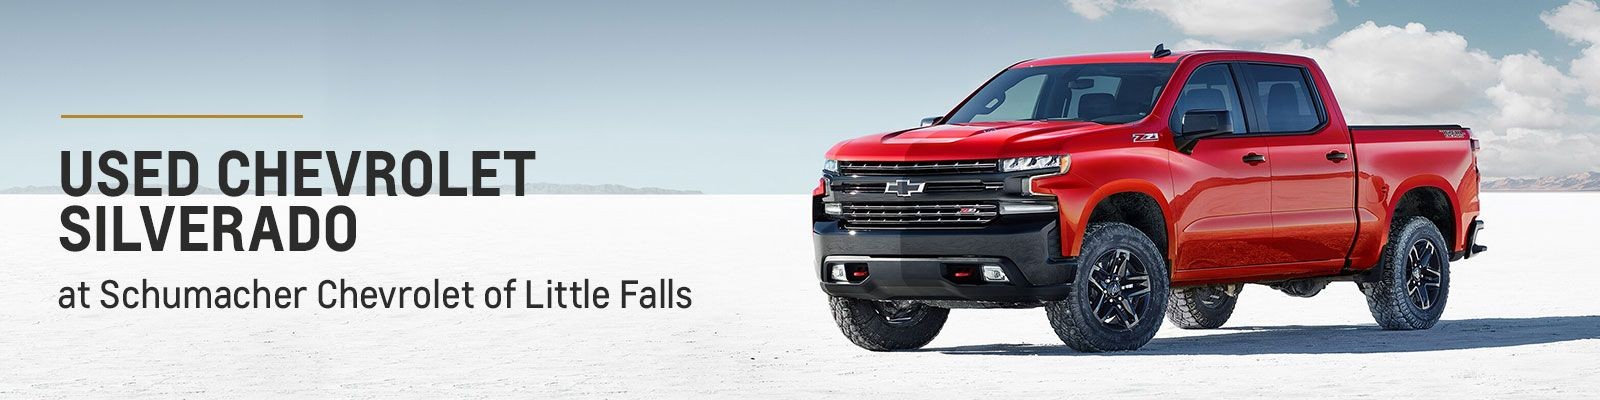 Used Chevrolet Silverado For Sale in Little Falls NJ